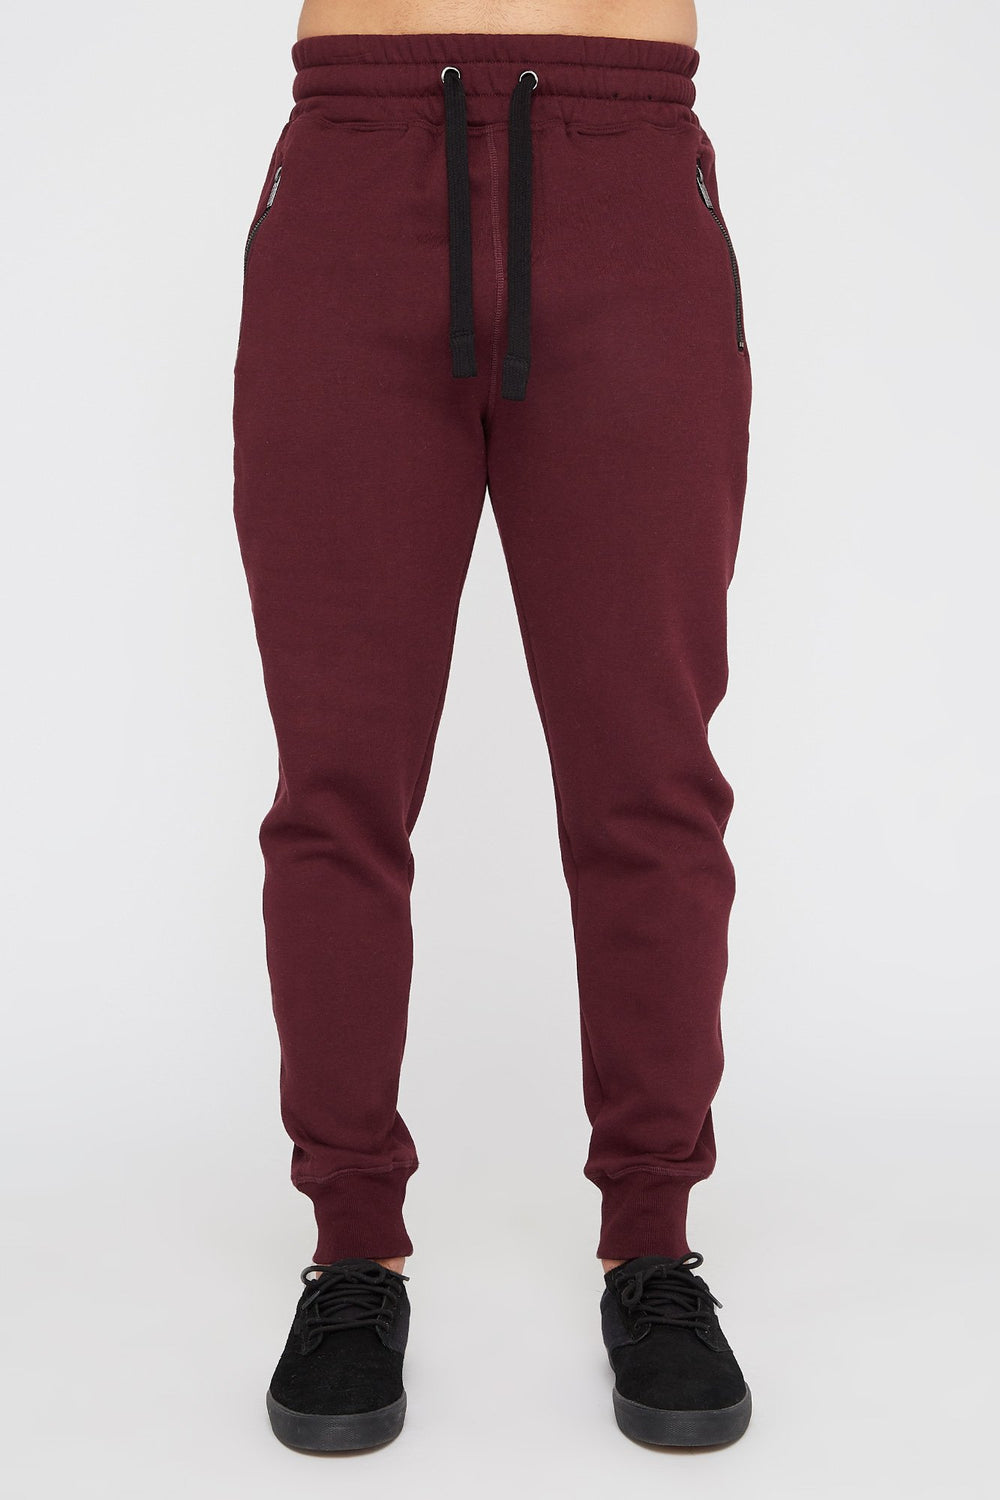 West49 Mens Solid Zip-Up Jogger Burgundy